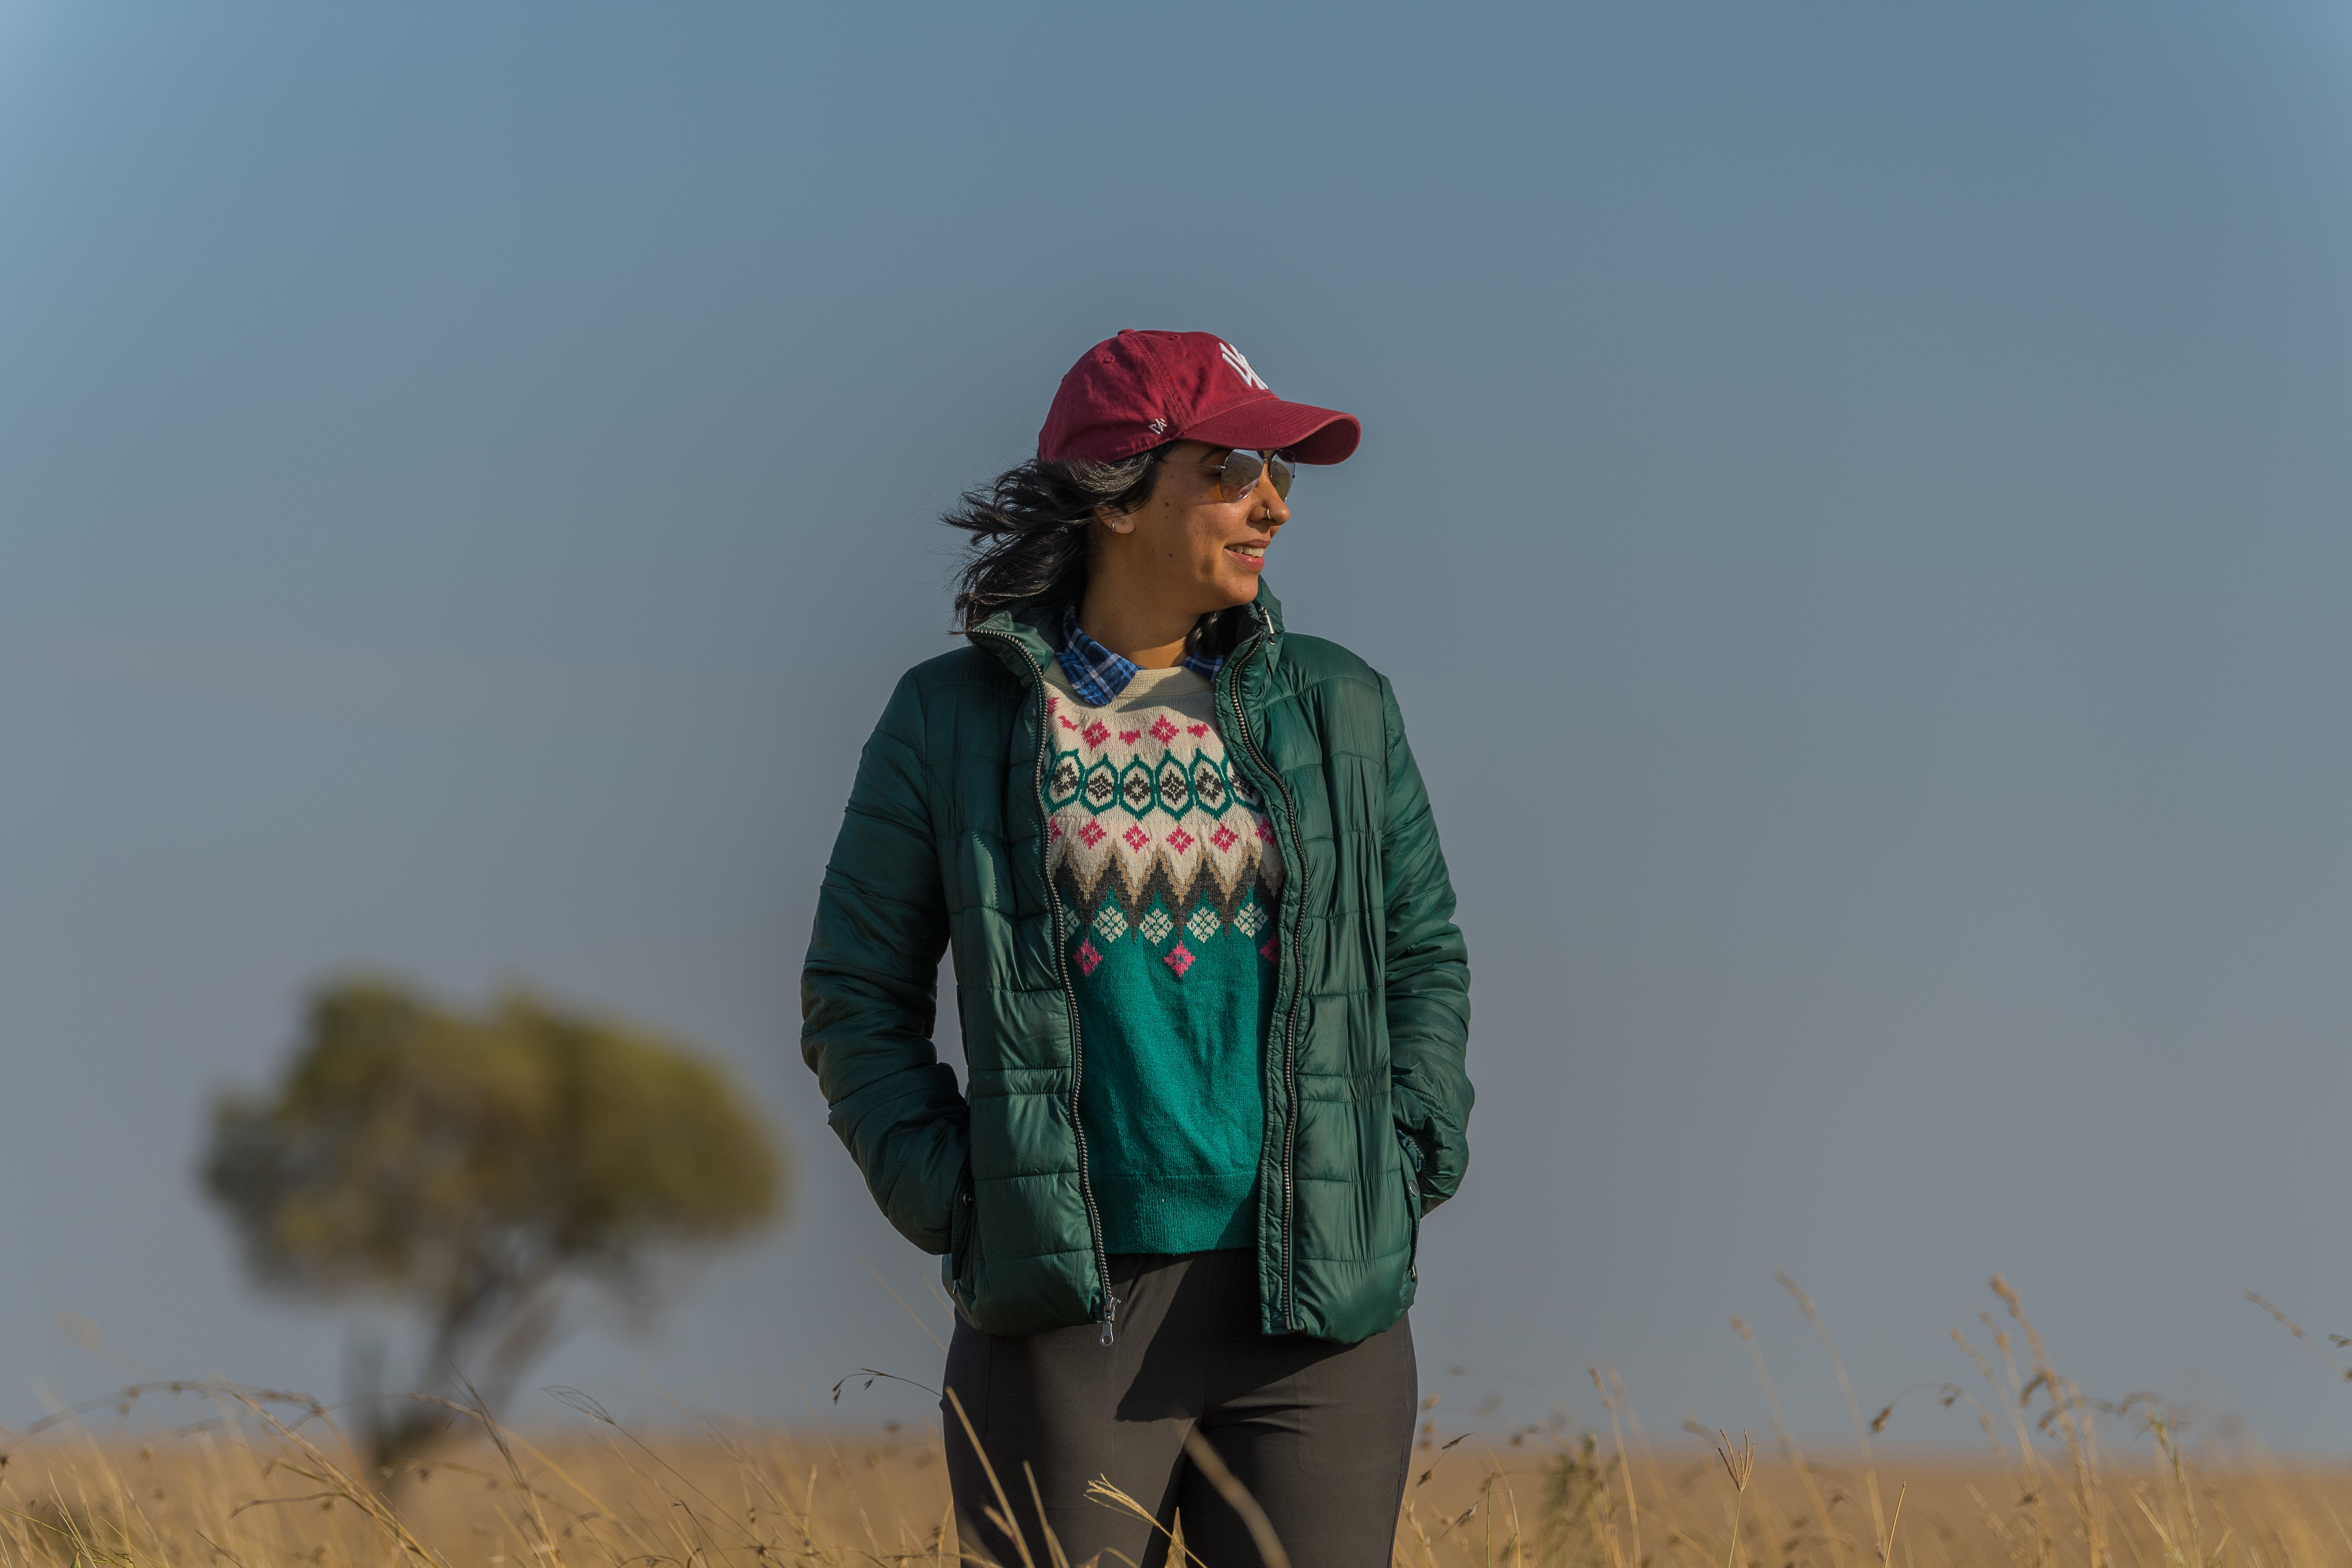 In the never ending plains of Masai Mara.